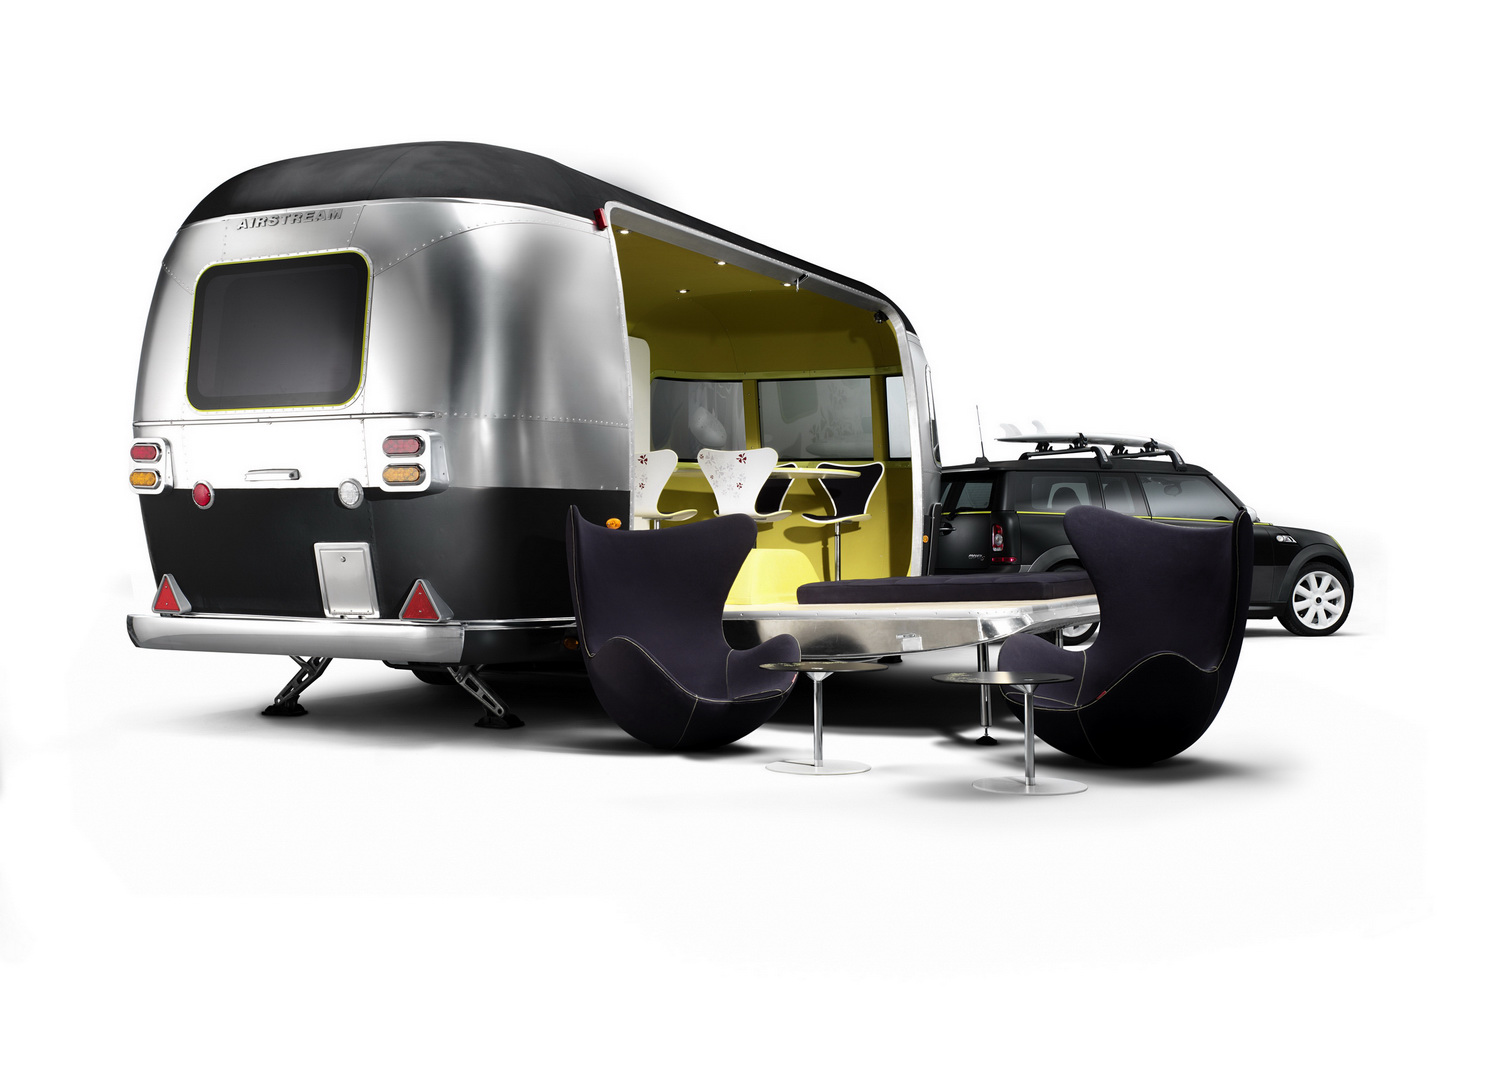 camping branchouille en mini clubman et caravane airstream. Black Bedroom Furniture Sets. Home Design Ideas